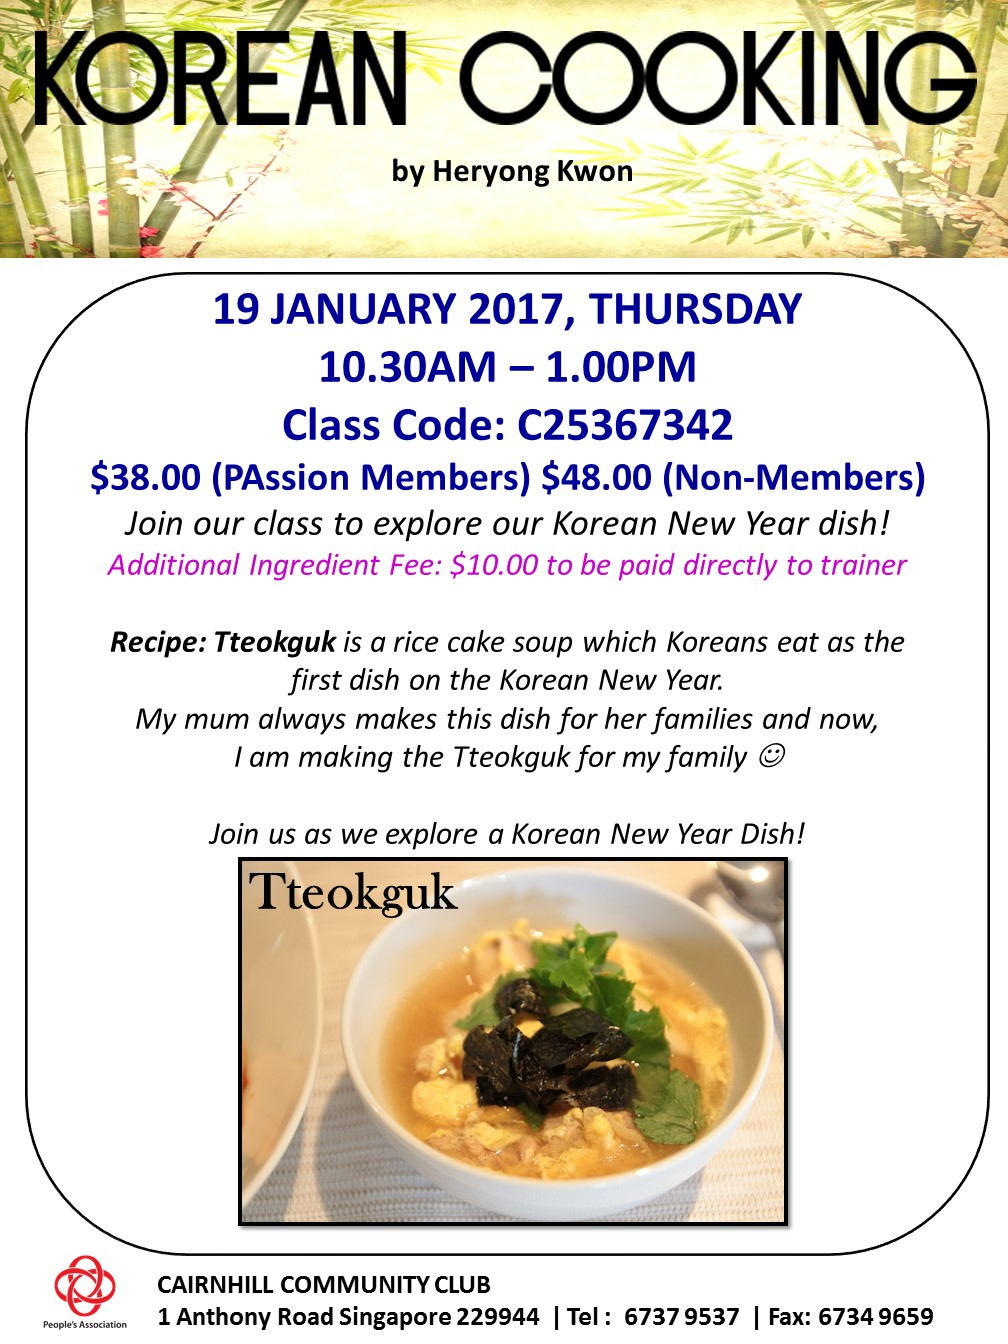 Cooking class on 19th January 2017